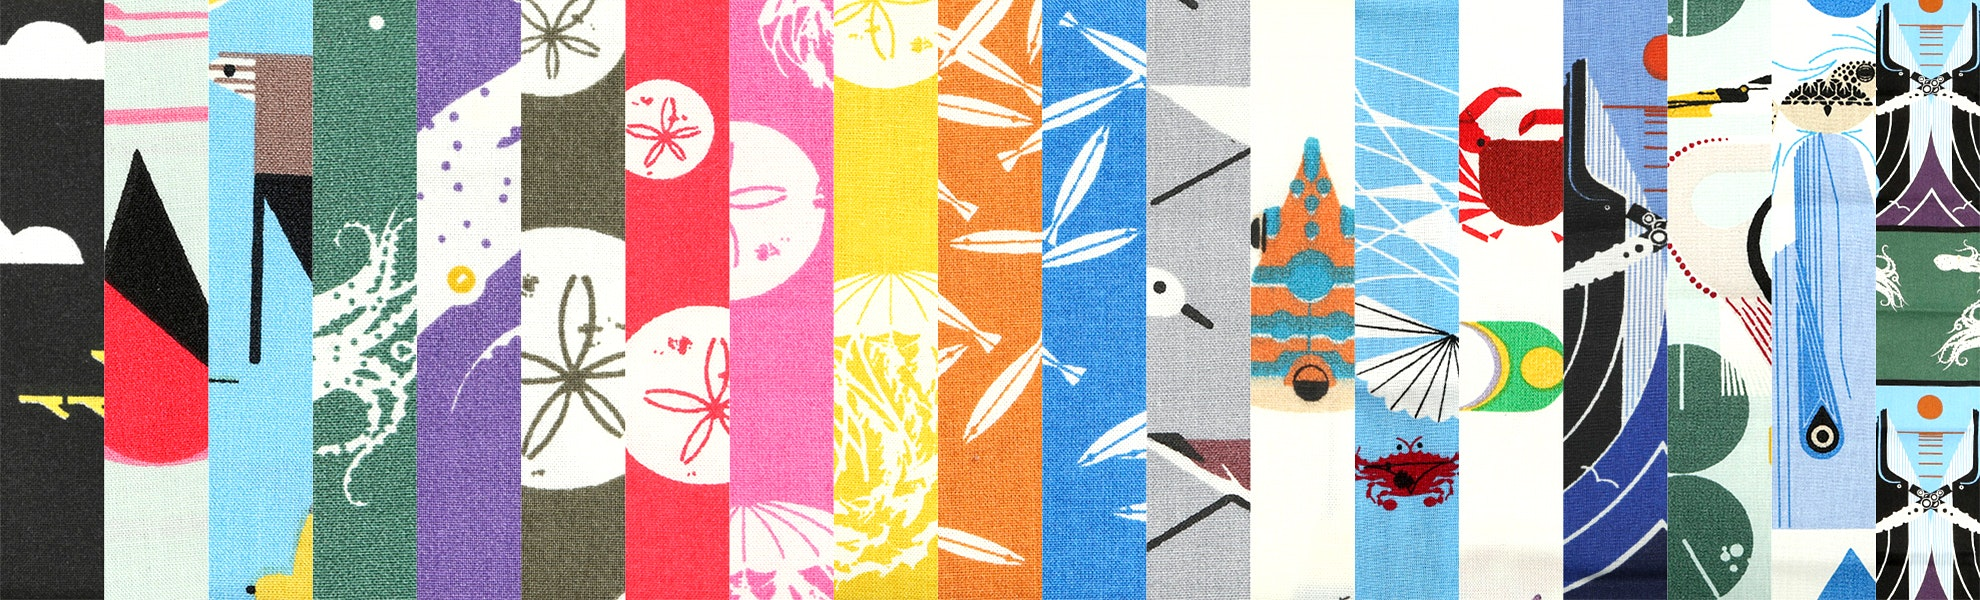 Maritime by Charley Harper Fat Quarter Bundle